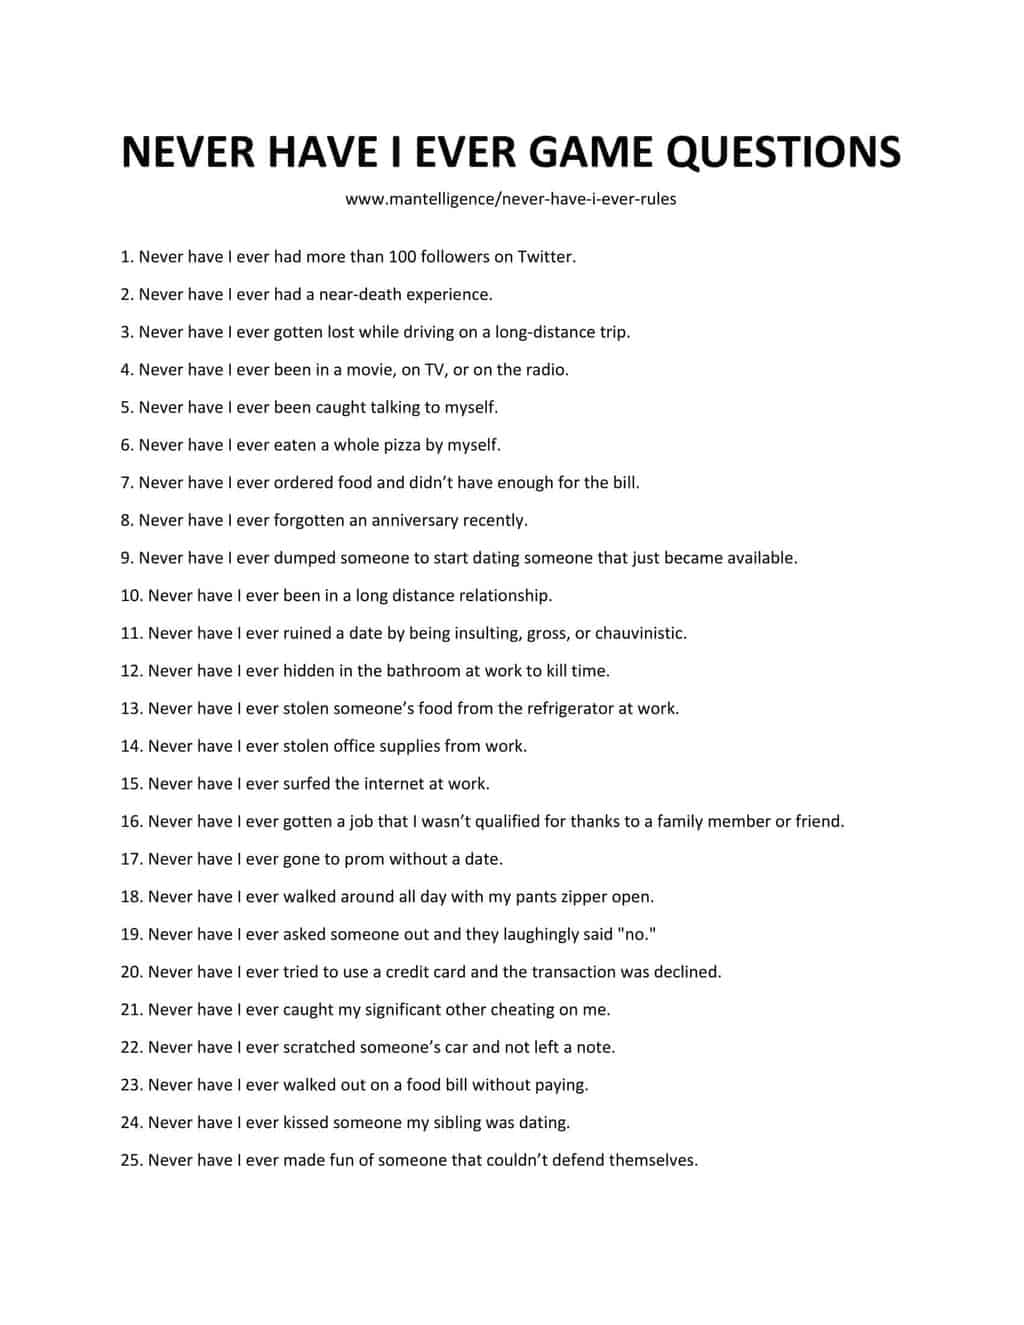 List of Never Have I Ever Rules